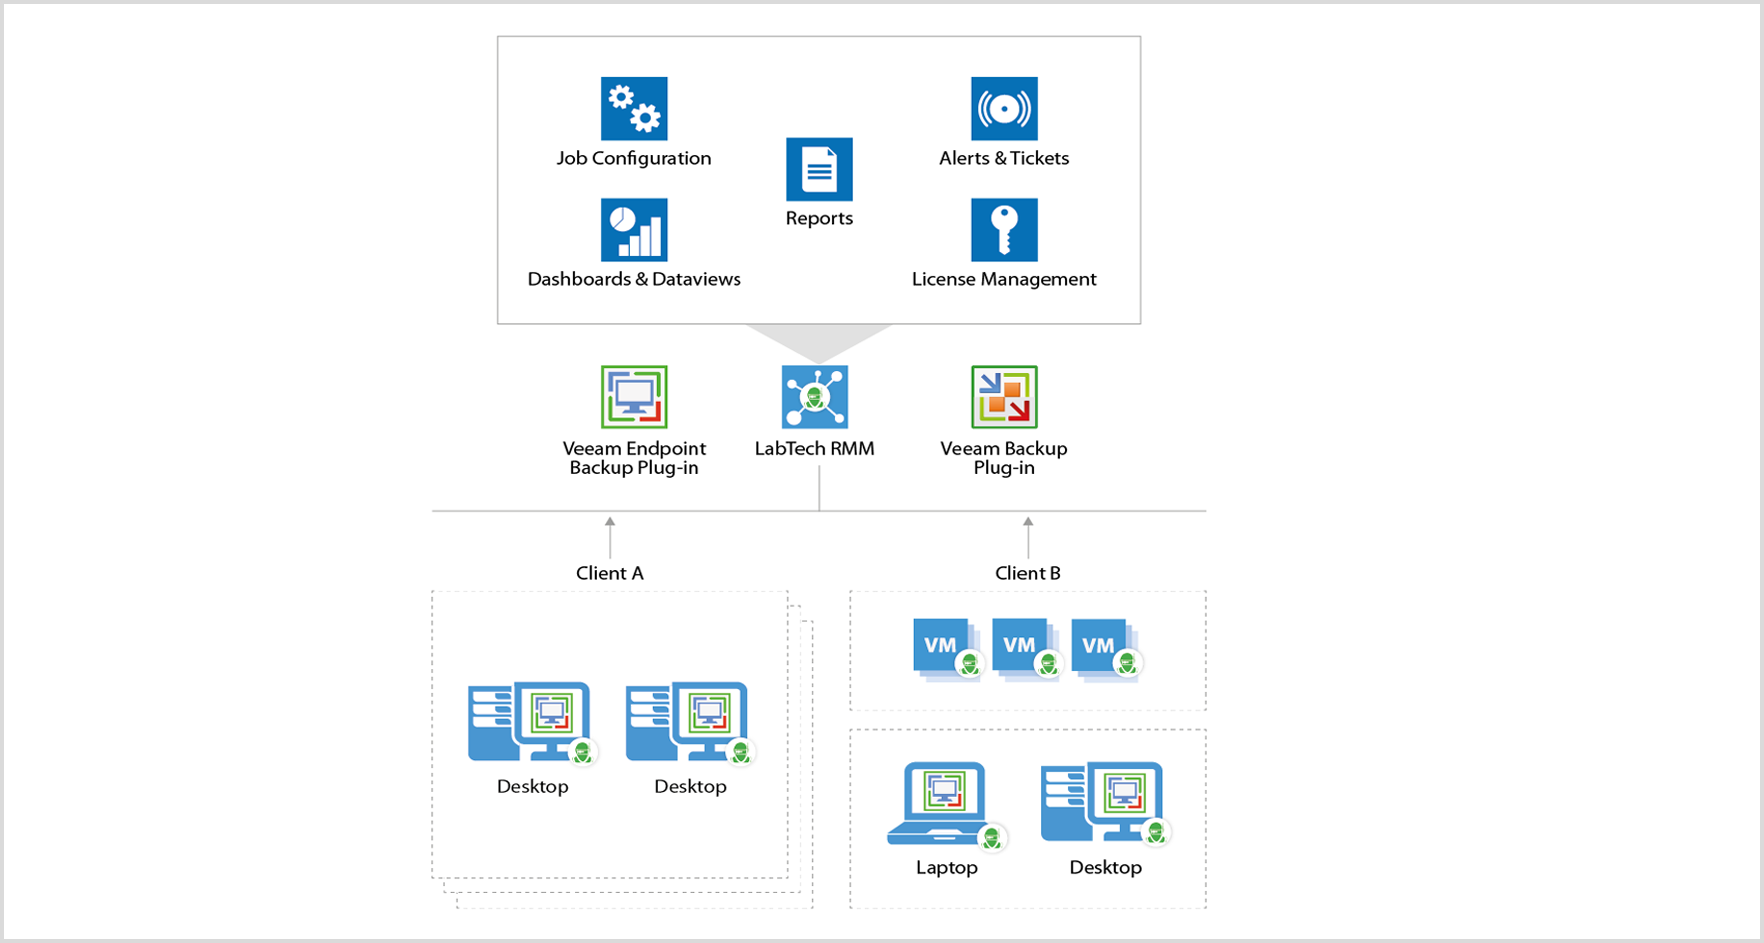 veeam-labtech-backup-endpoint-diagram.png